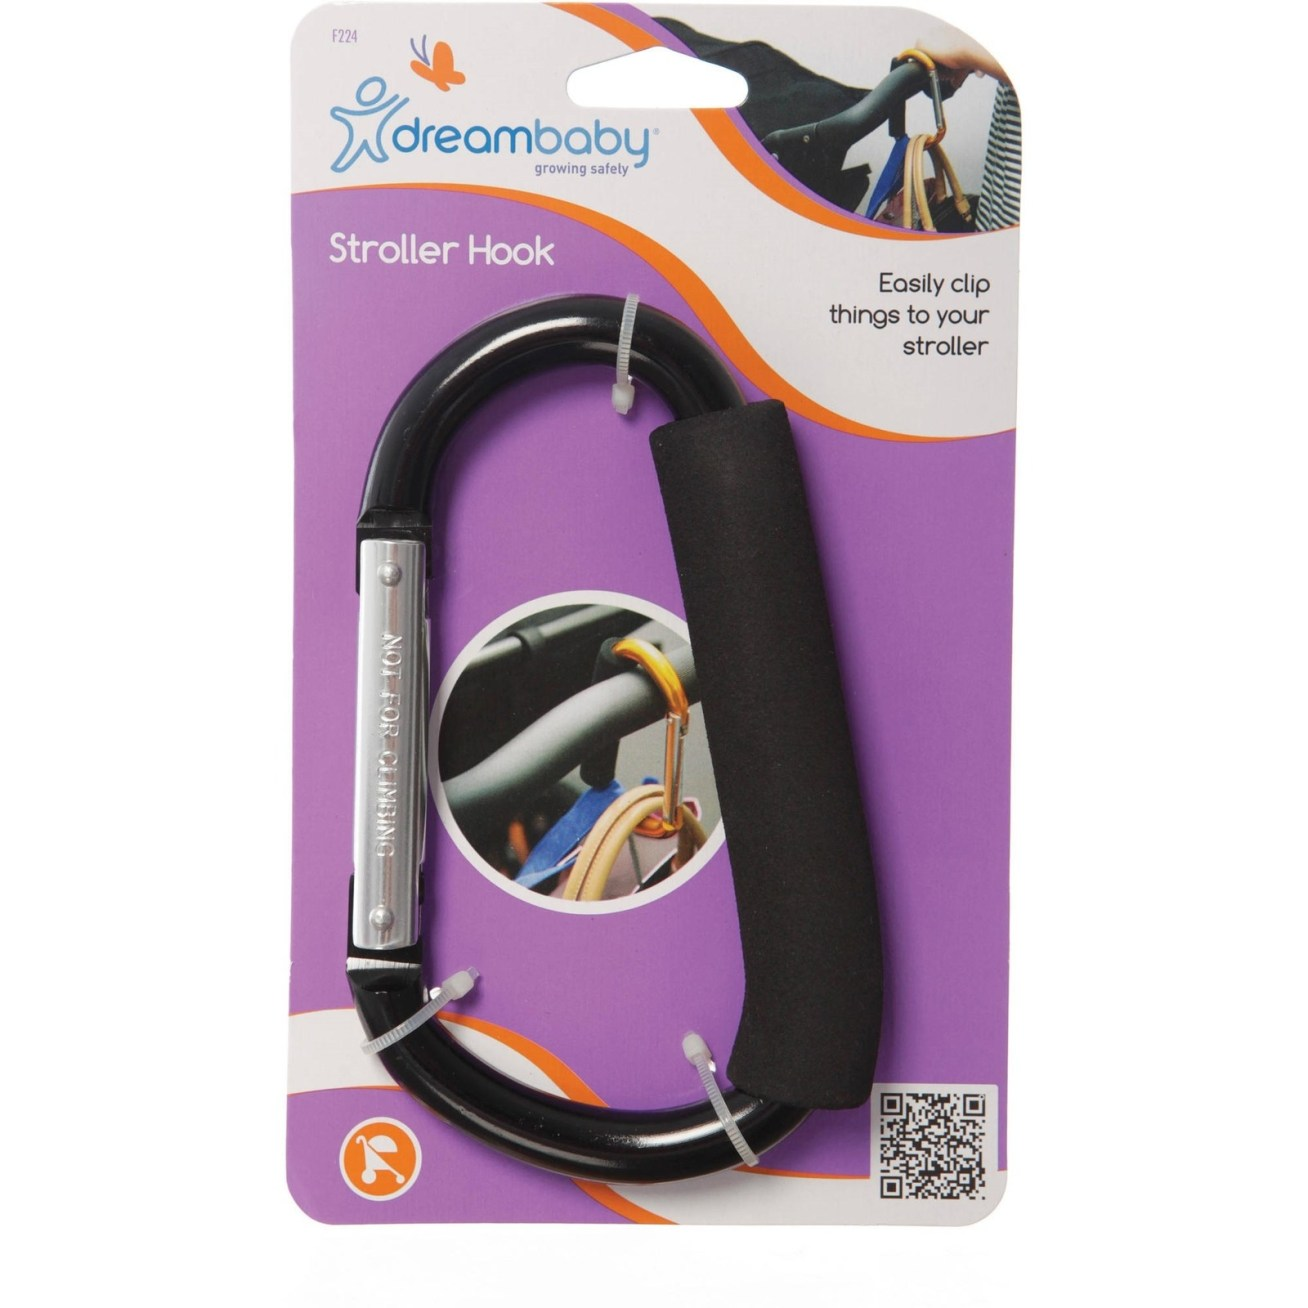 """Promising review: """"This hook is a convenient tool to add bags and paraphernalia to your baby carriage. Easy to use, it simply hooks onto the carriage and bingo! You can now attach any bag to your hook. A must-have for all moms carrying lots of baby gear!"""" —jknopGet it from Walmart: the single pack for  or a value pack with a second, smaller clip for .20. (Why the price discrepancy? ¯\_(ツ)_/¯ but I'll take it!)"""